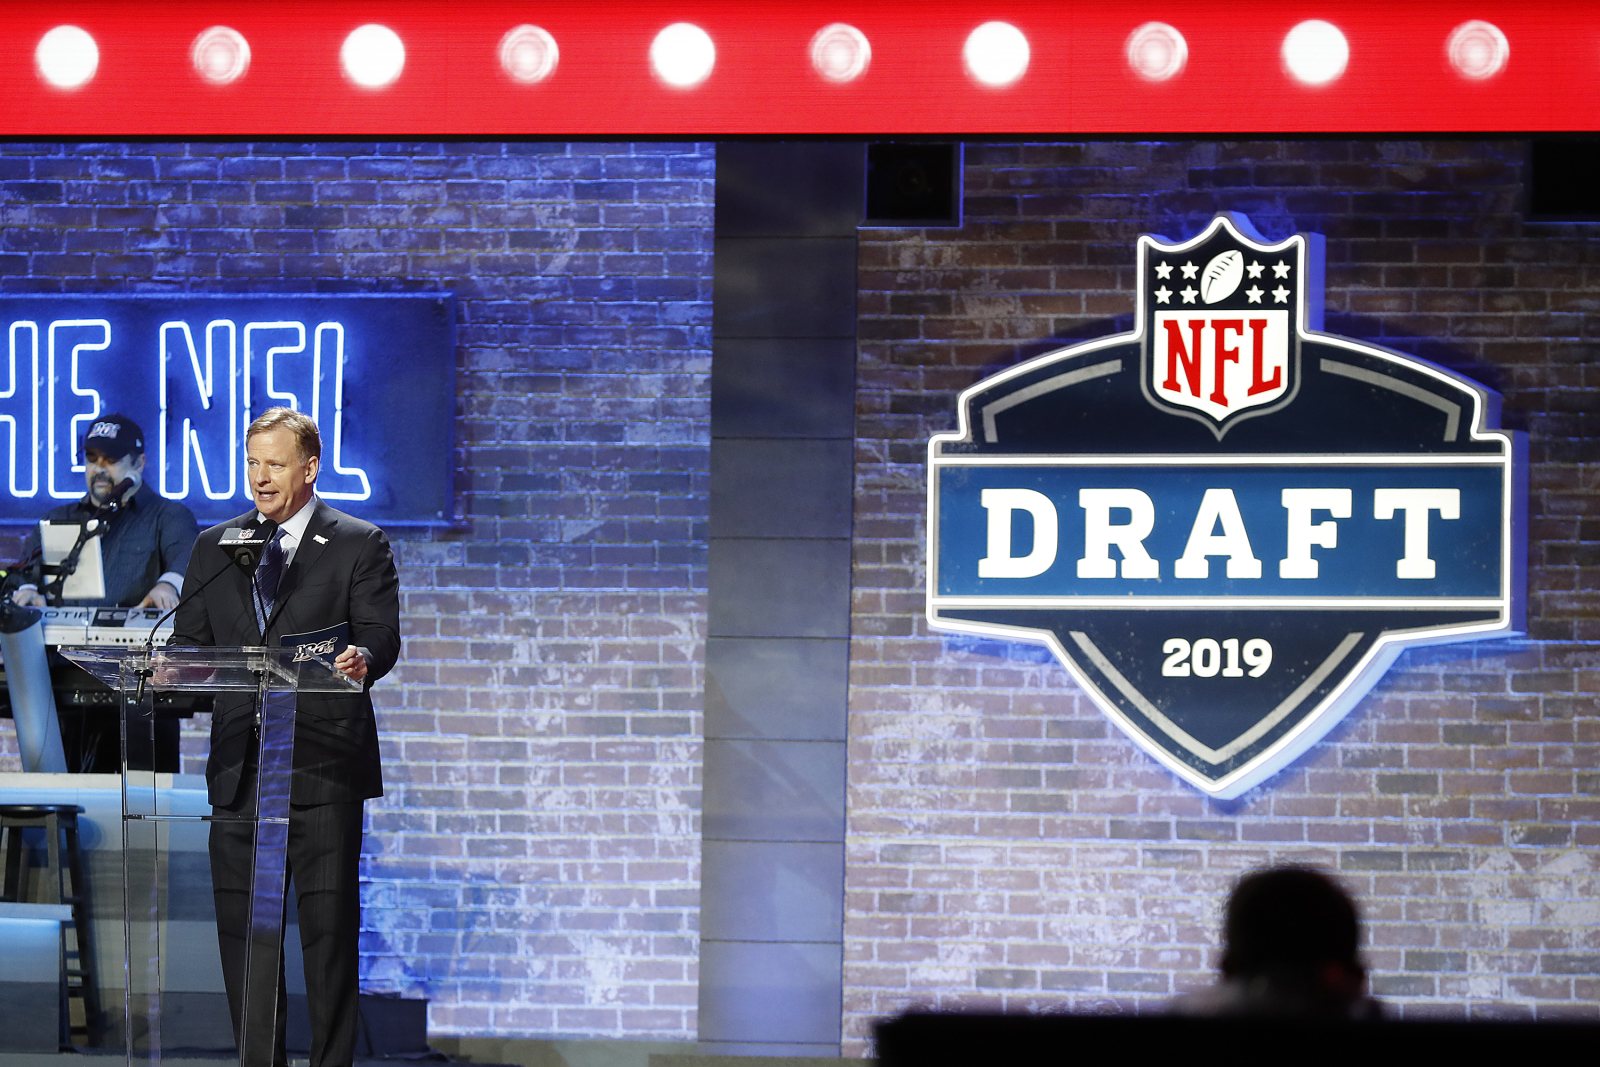 Vikings drafting a WR in the first round reportedly not a priority in 2020